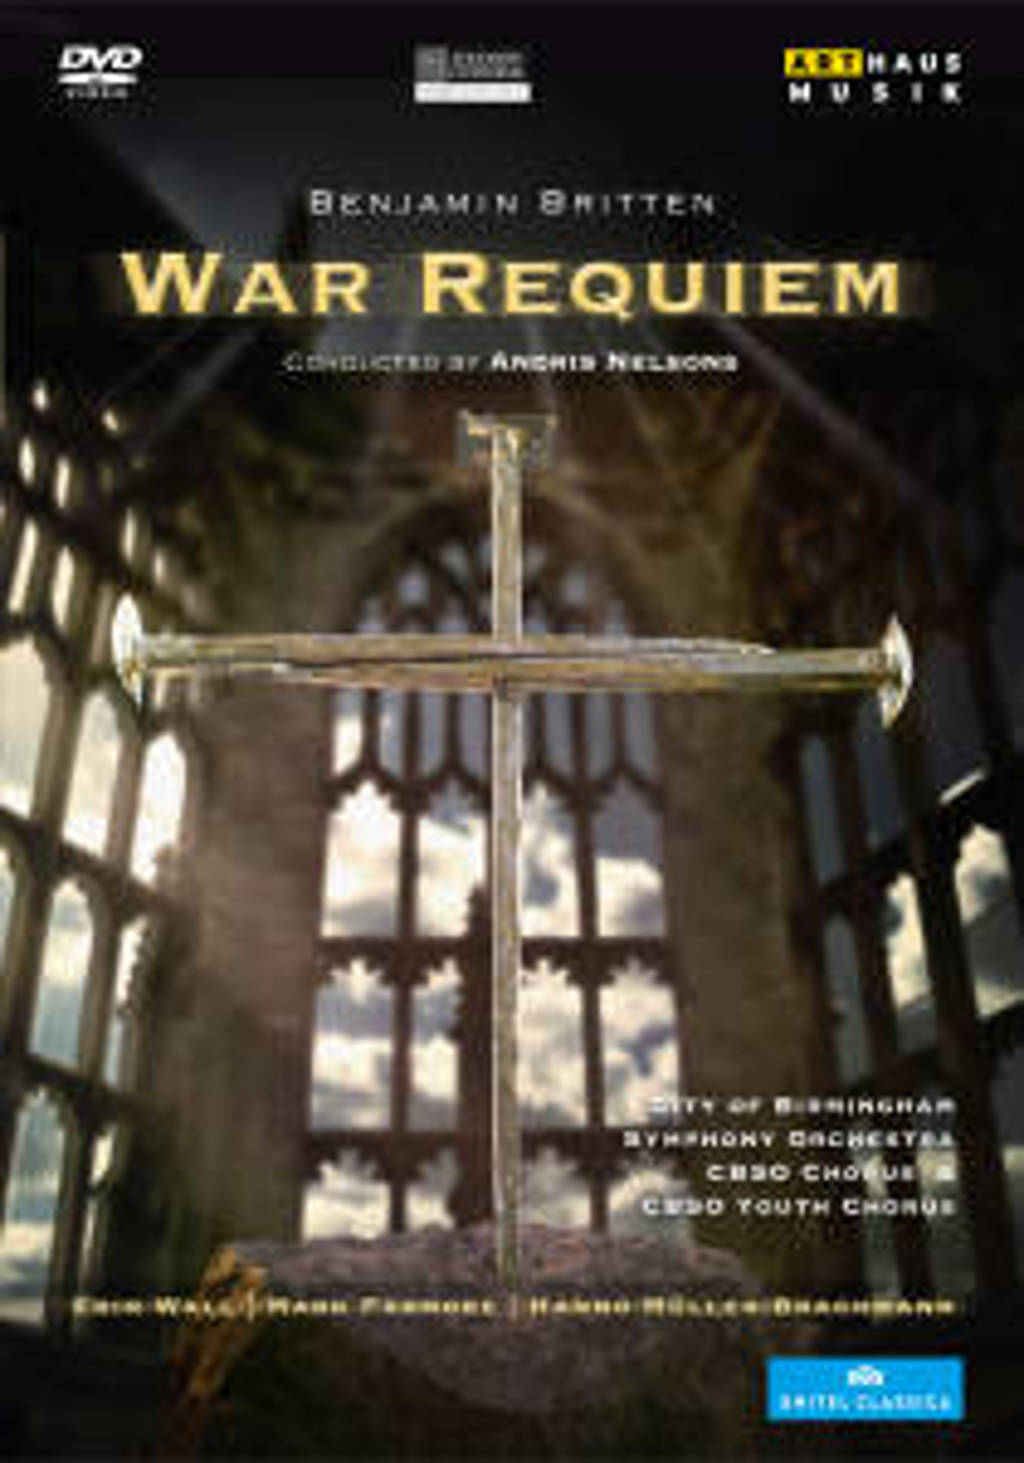 Wall,Padmore,Muller Brachmann - War Requiem, Coventry Cathedral 201 (DVD)